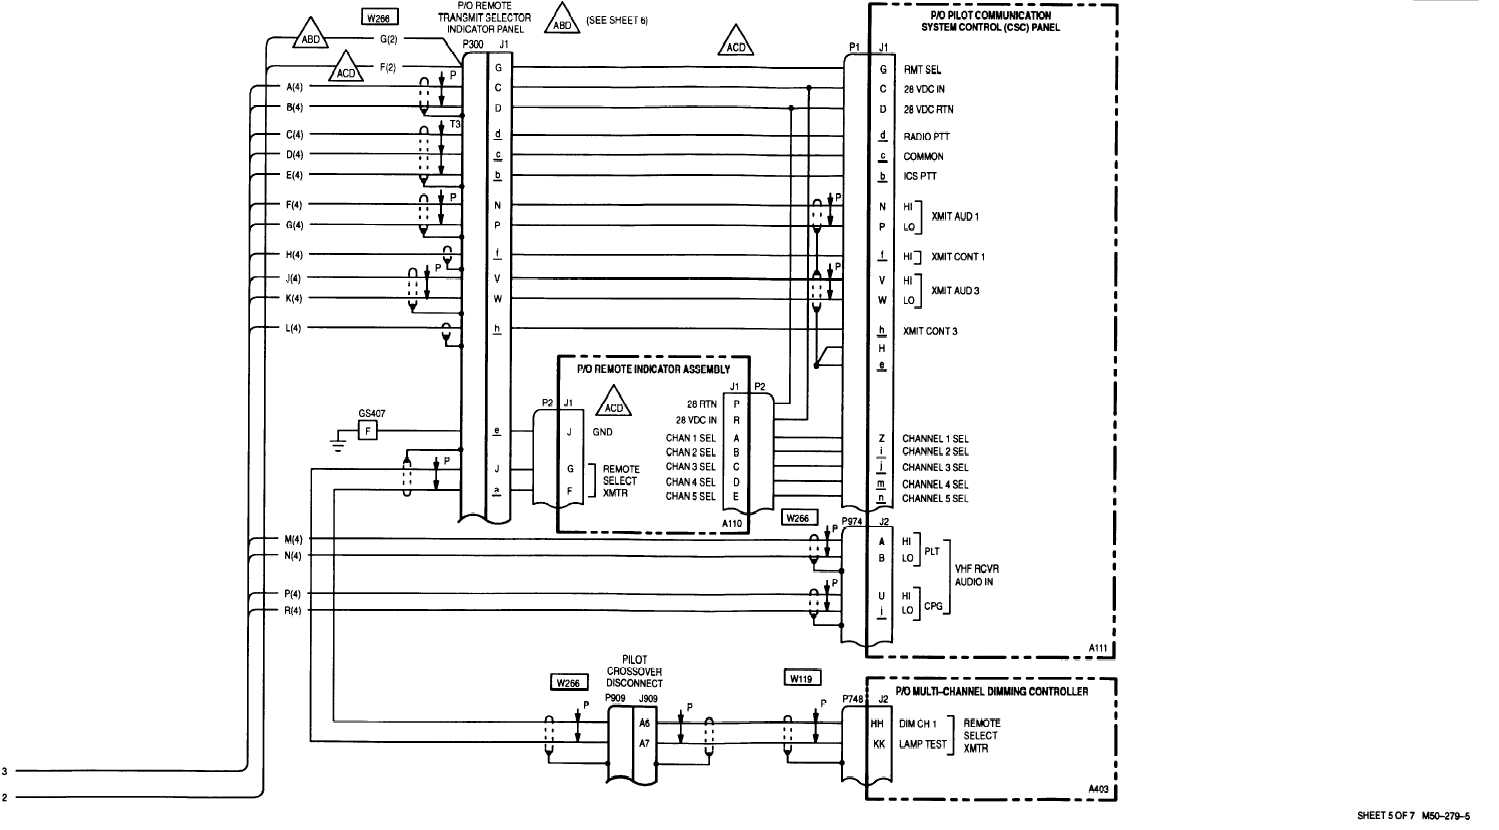 Generator Fuse Box - Auto Electrical Wiring Diagram on manufactured home electrical wiring diagram, heater wiring diagram, motorhome battery wiring diagram, olympian generator control panel, portable generators repair wiring diagram, toyota alternator wiring diagram, 12 lead 3 phase motor wiring diagram, olympian generator sets, genset wiring diagram, wilson alternator wiring diagram, olympian generator fuel tank, olympian generator wiring model gep18-2, rv wiring diagram, olympian generator drawings, power converter charger installation diagram, rv charger wire diagram,